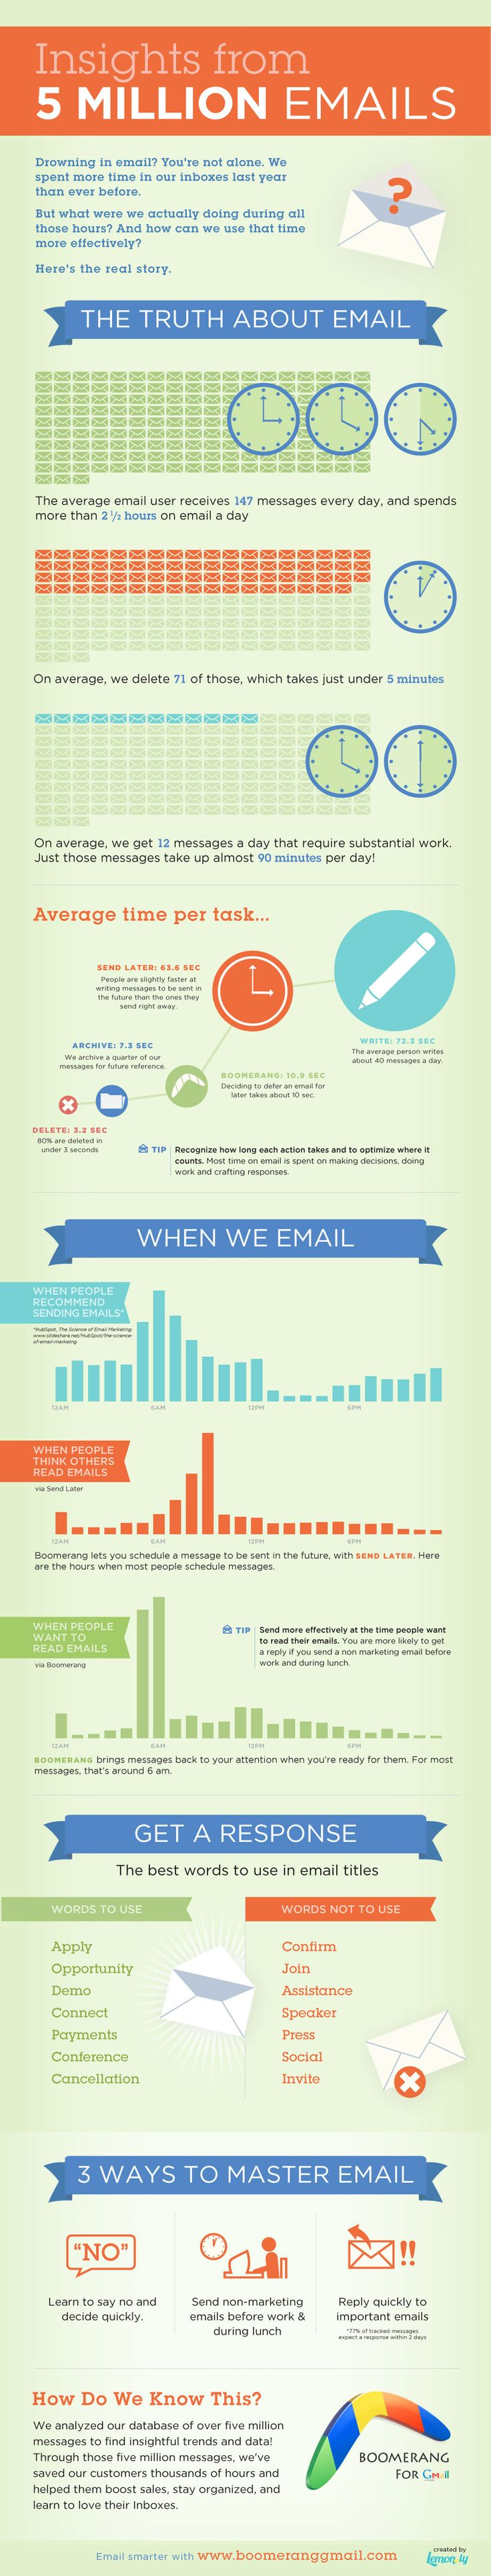 Want to Maximize Email Responses? Use These Words in Your Subject Line [INFOGRAPHIC]